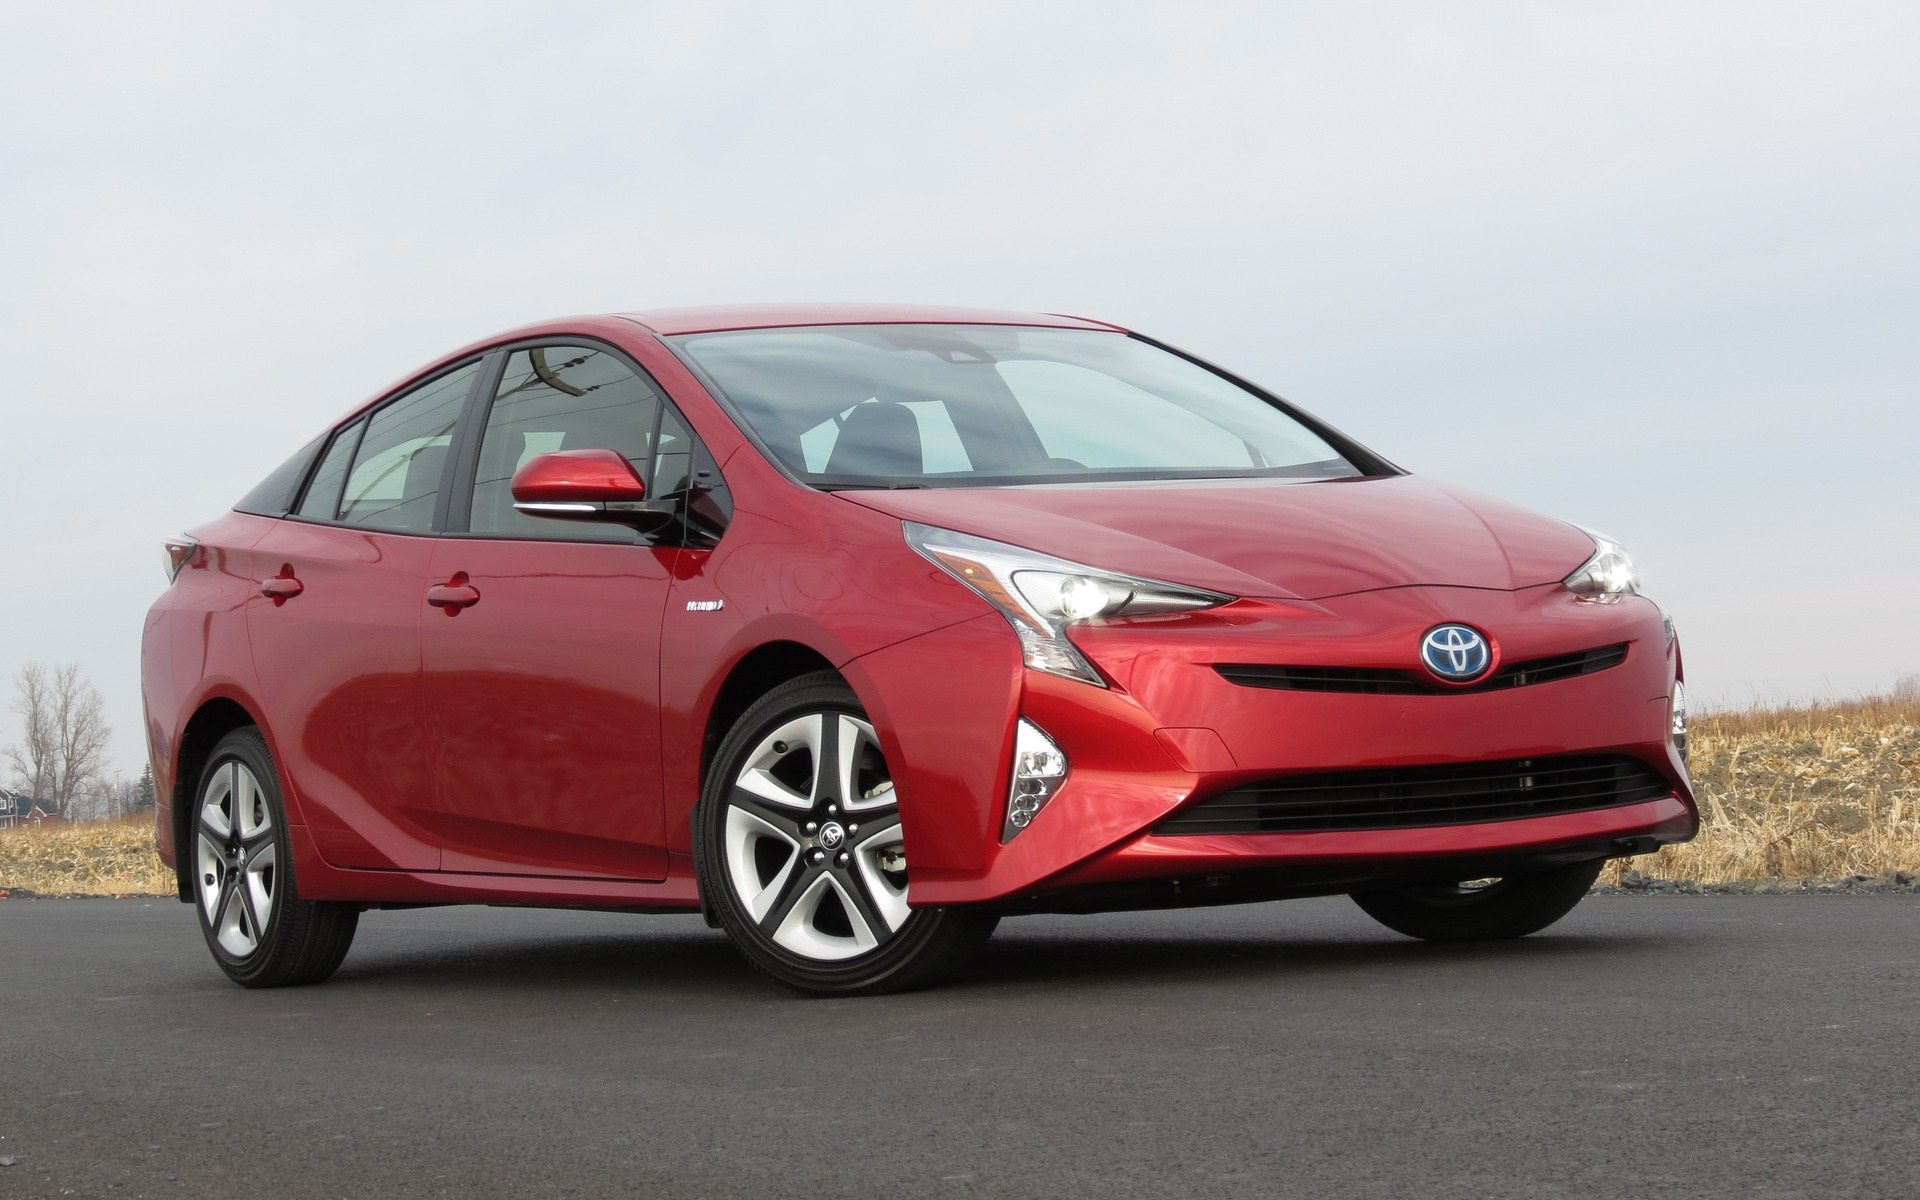 2018 toyota prius base specifications the car guide. Black Bedroom Furniture Sets. Home Design Ideas